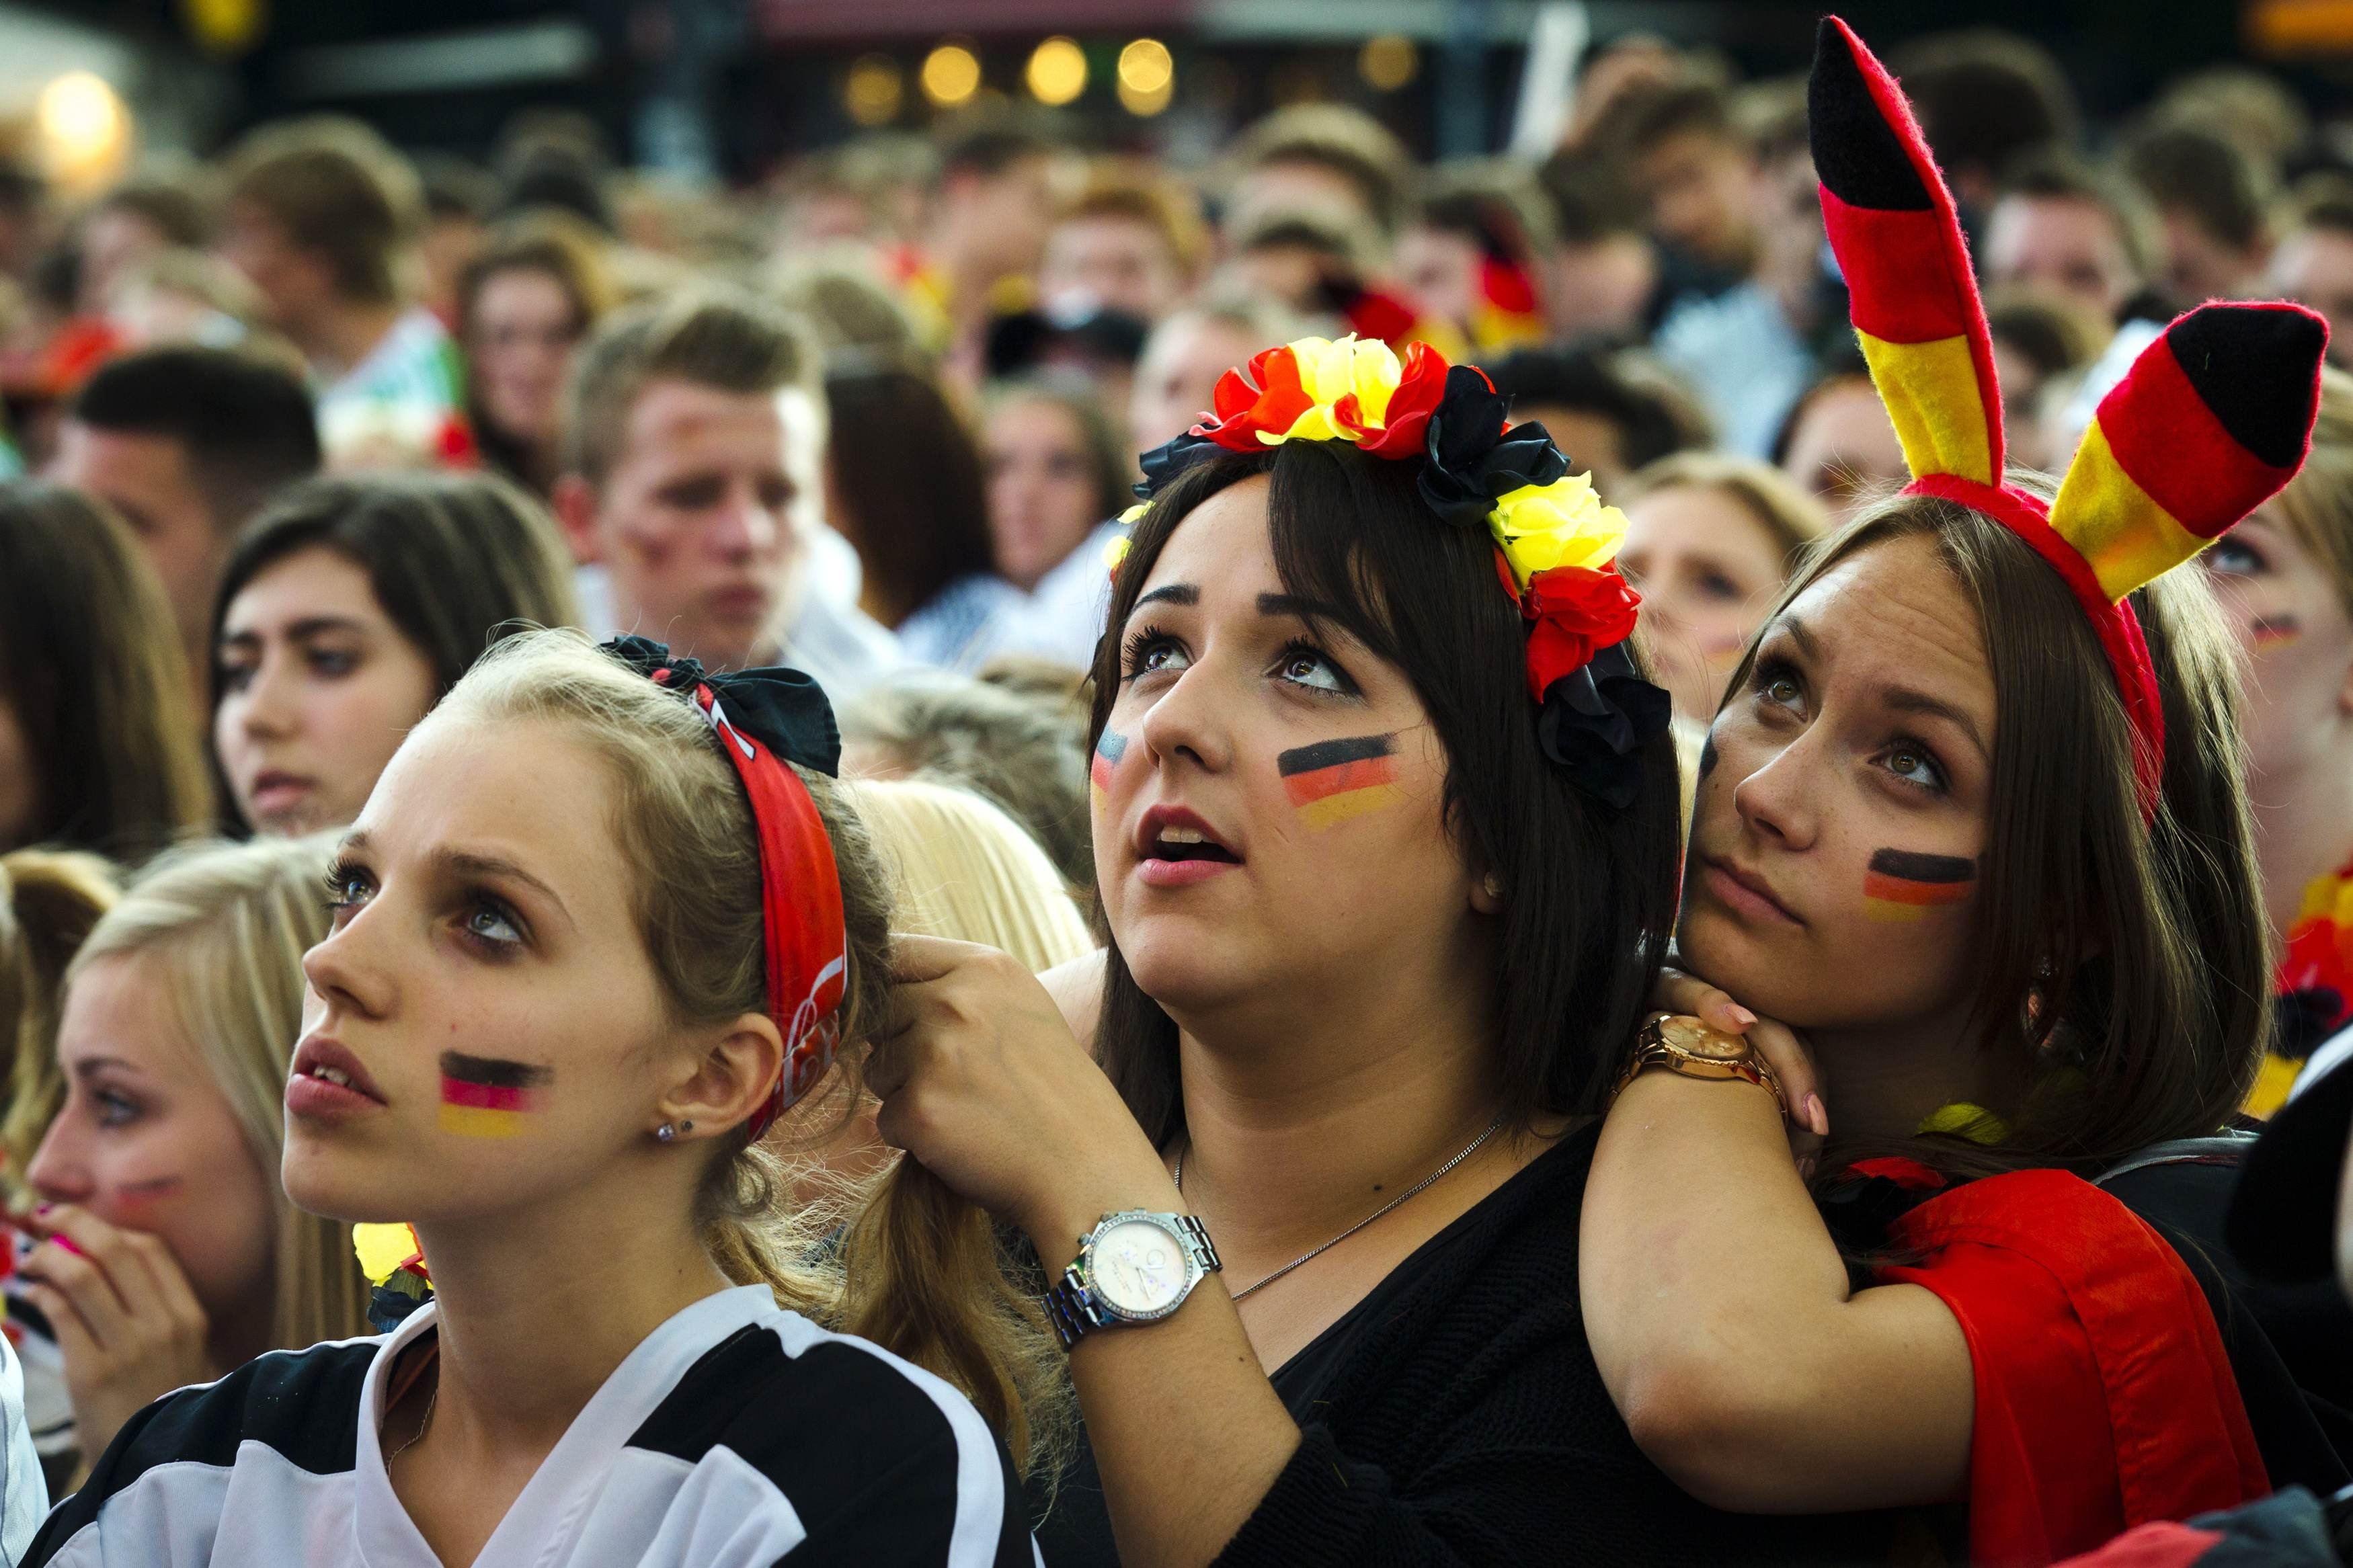 German fans watch as their team play against the U.S. at the Fanmeile public viewing arena in Berlin on June 26, 2014.